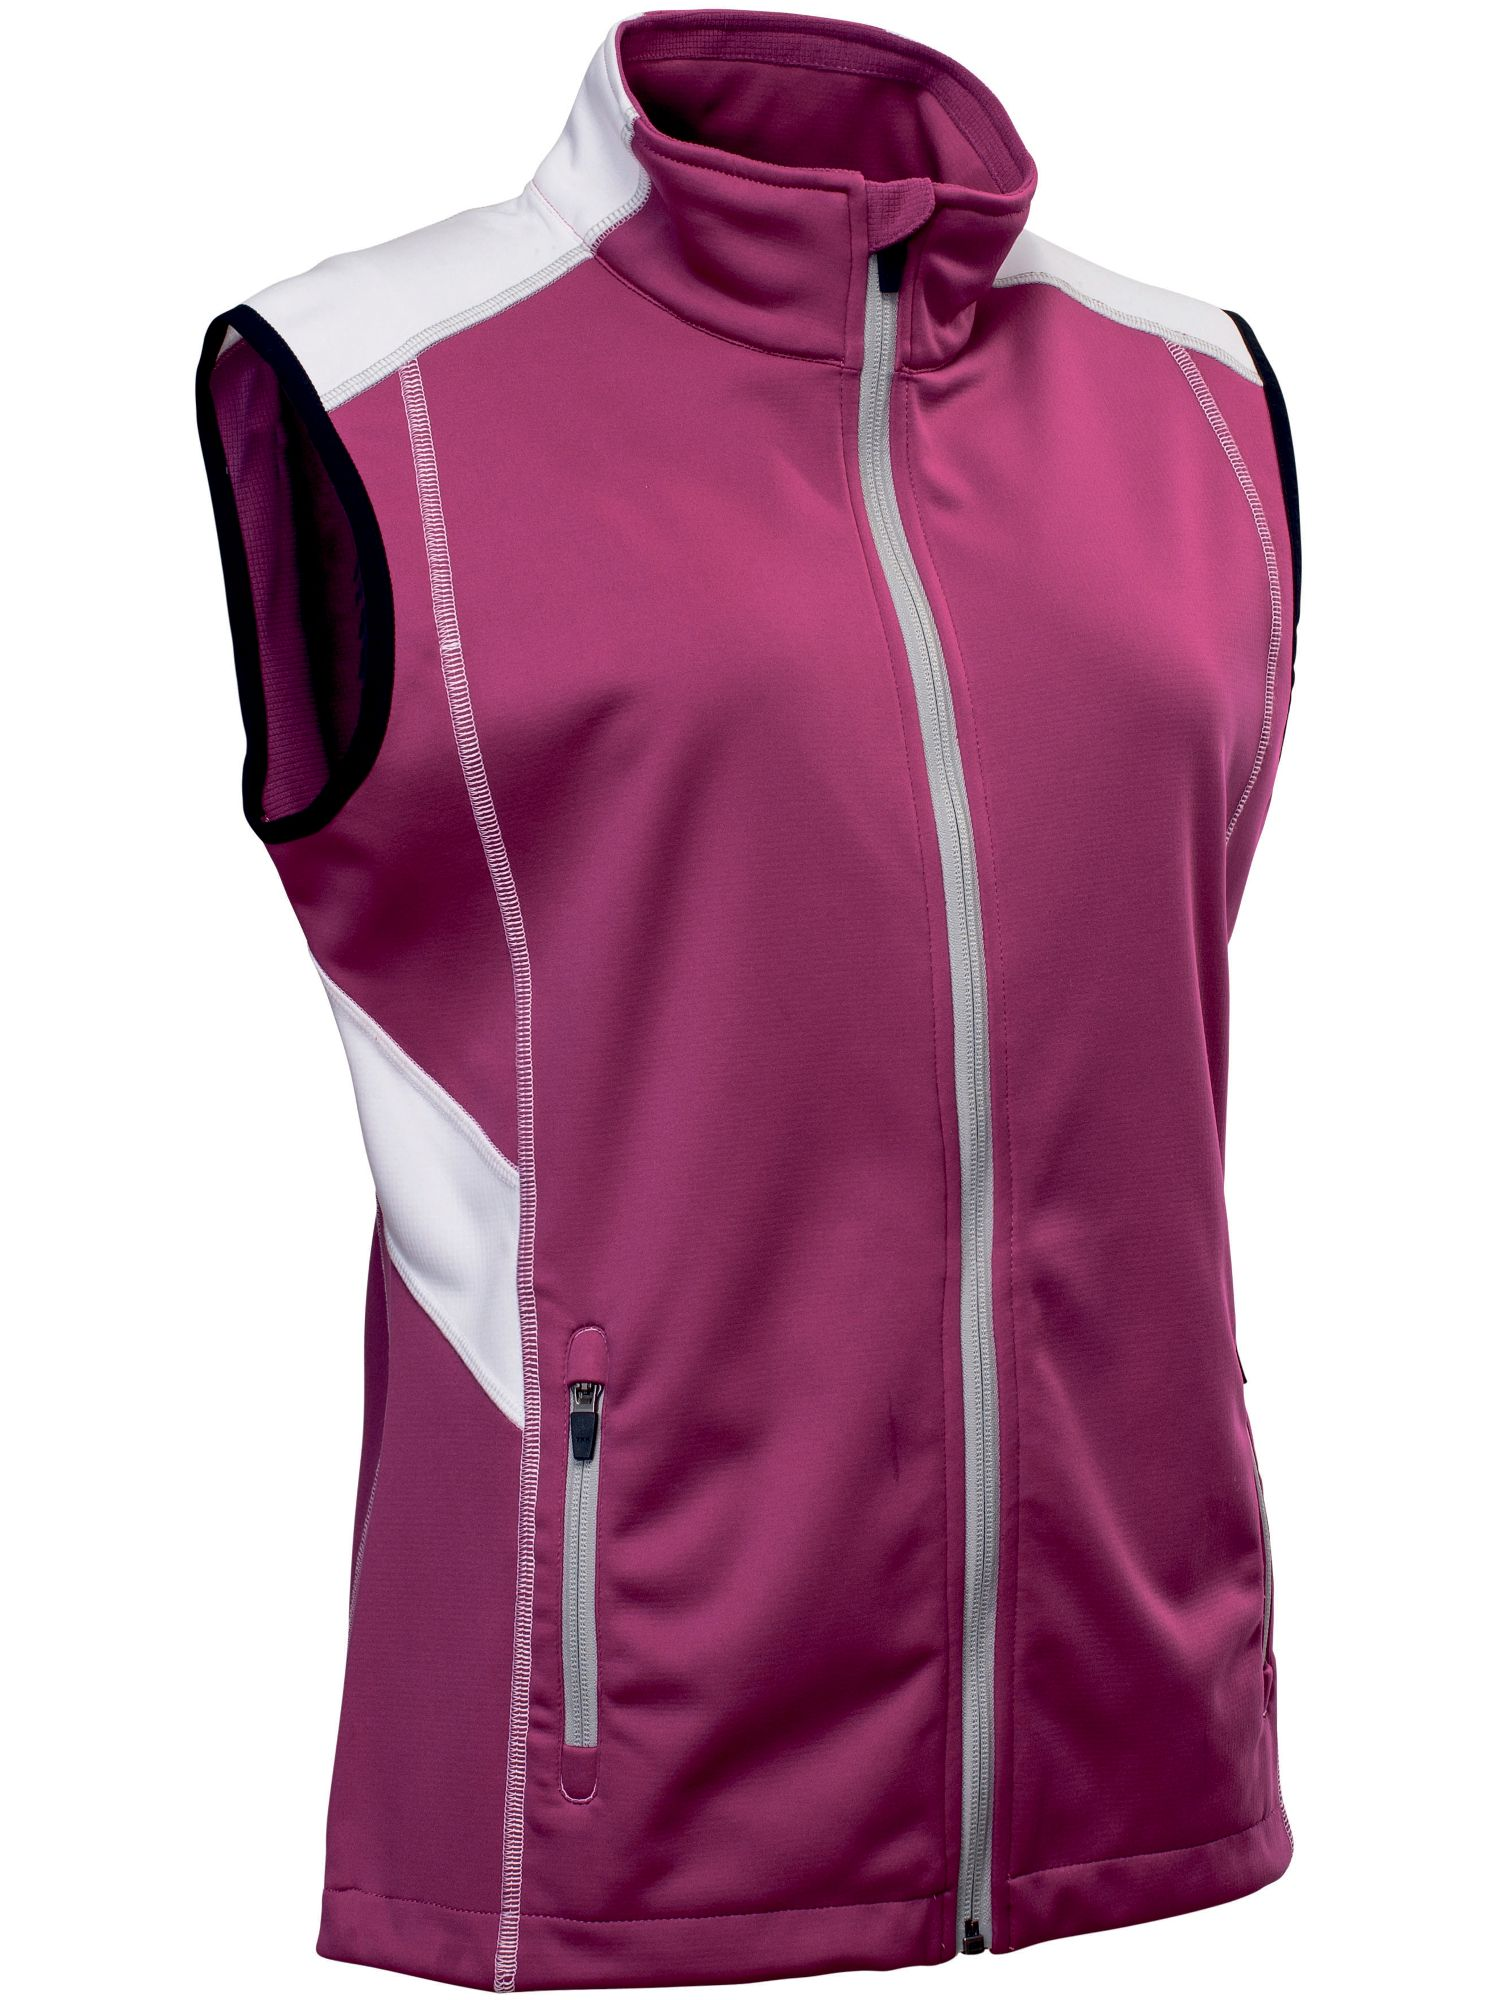 Abacus Aberdeen Softshell Gilet, Purple Review thumbnail